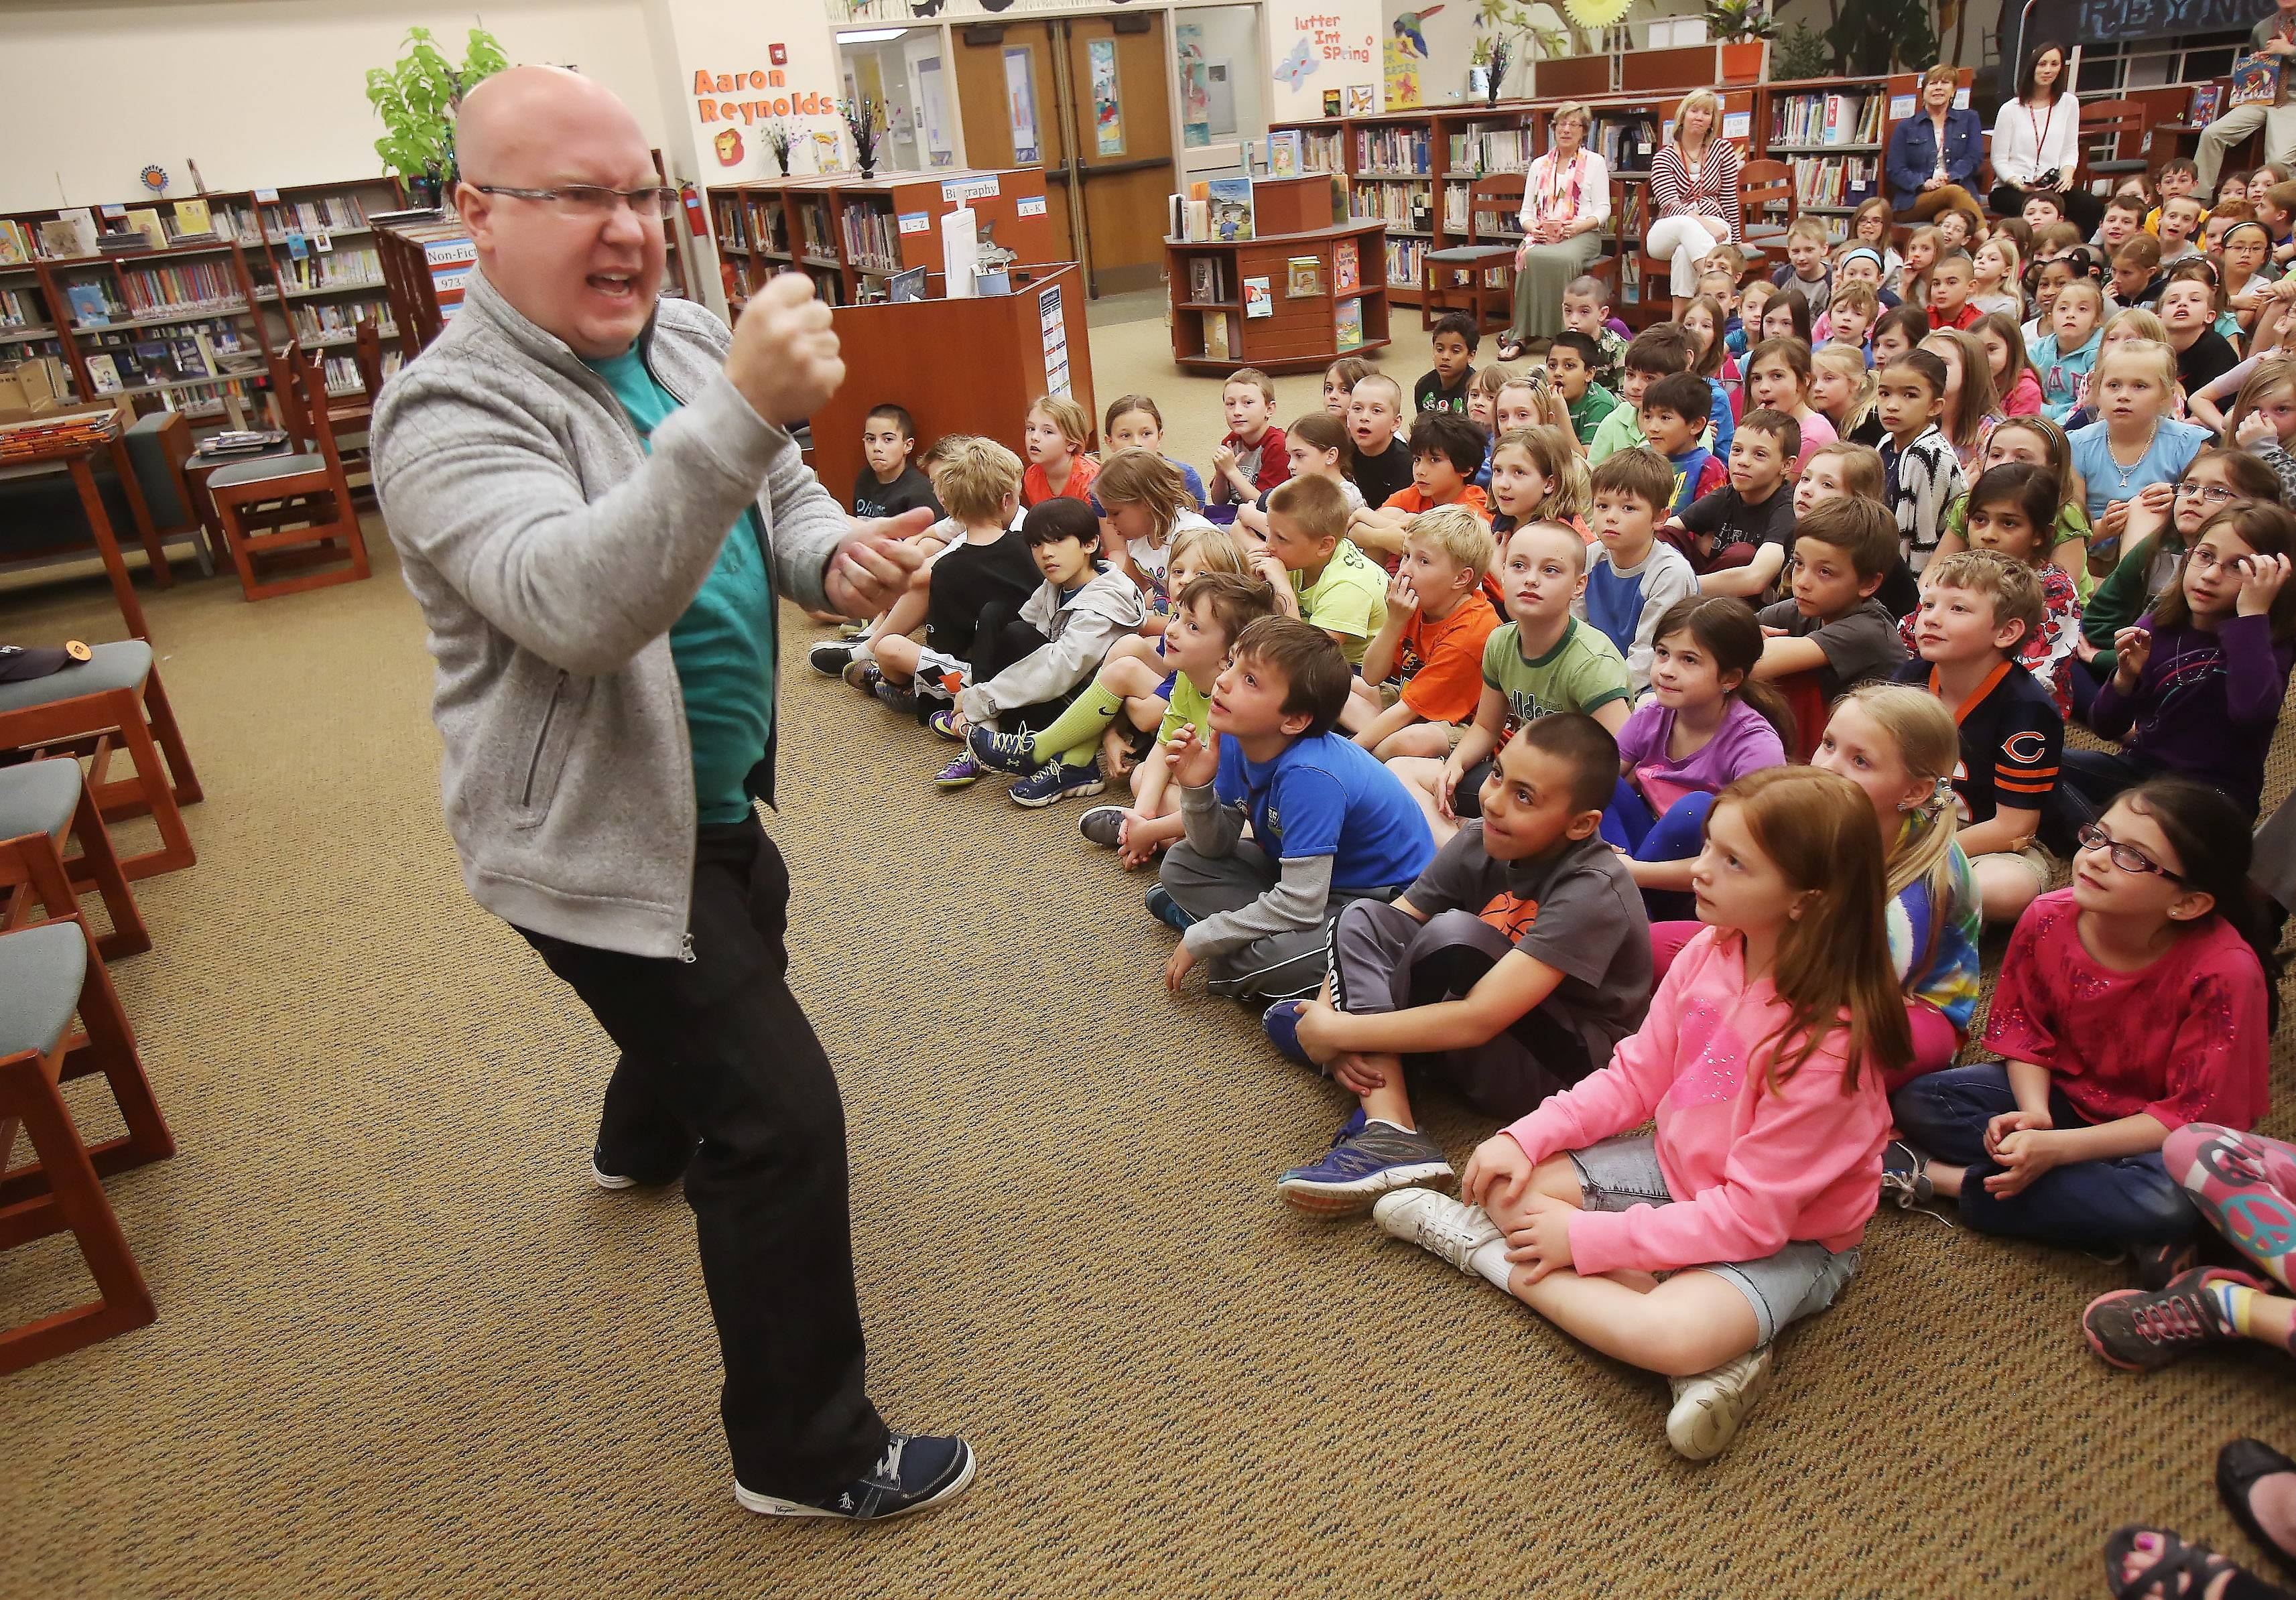 Children's author Aaron Reynolds educates and entertains students Wednesday at Butterfield School in Libertyville. Reynolds has been on the New York Times best-seller list and won the Caldecott Medal award.